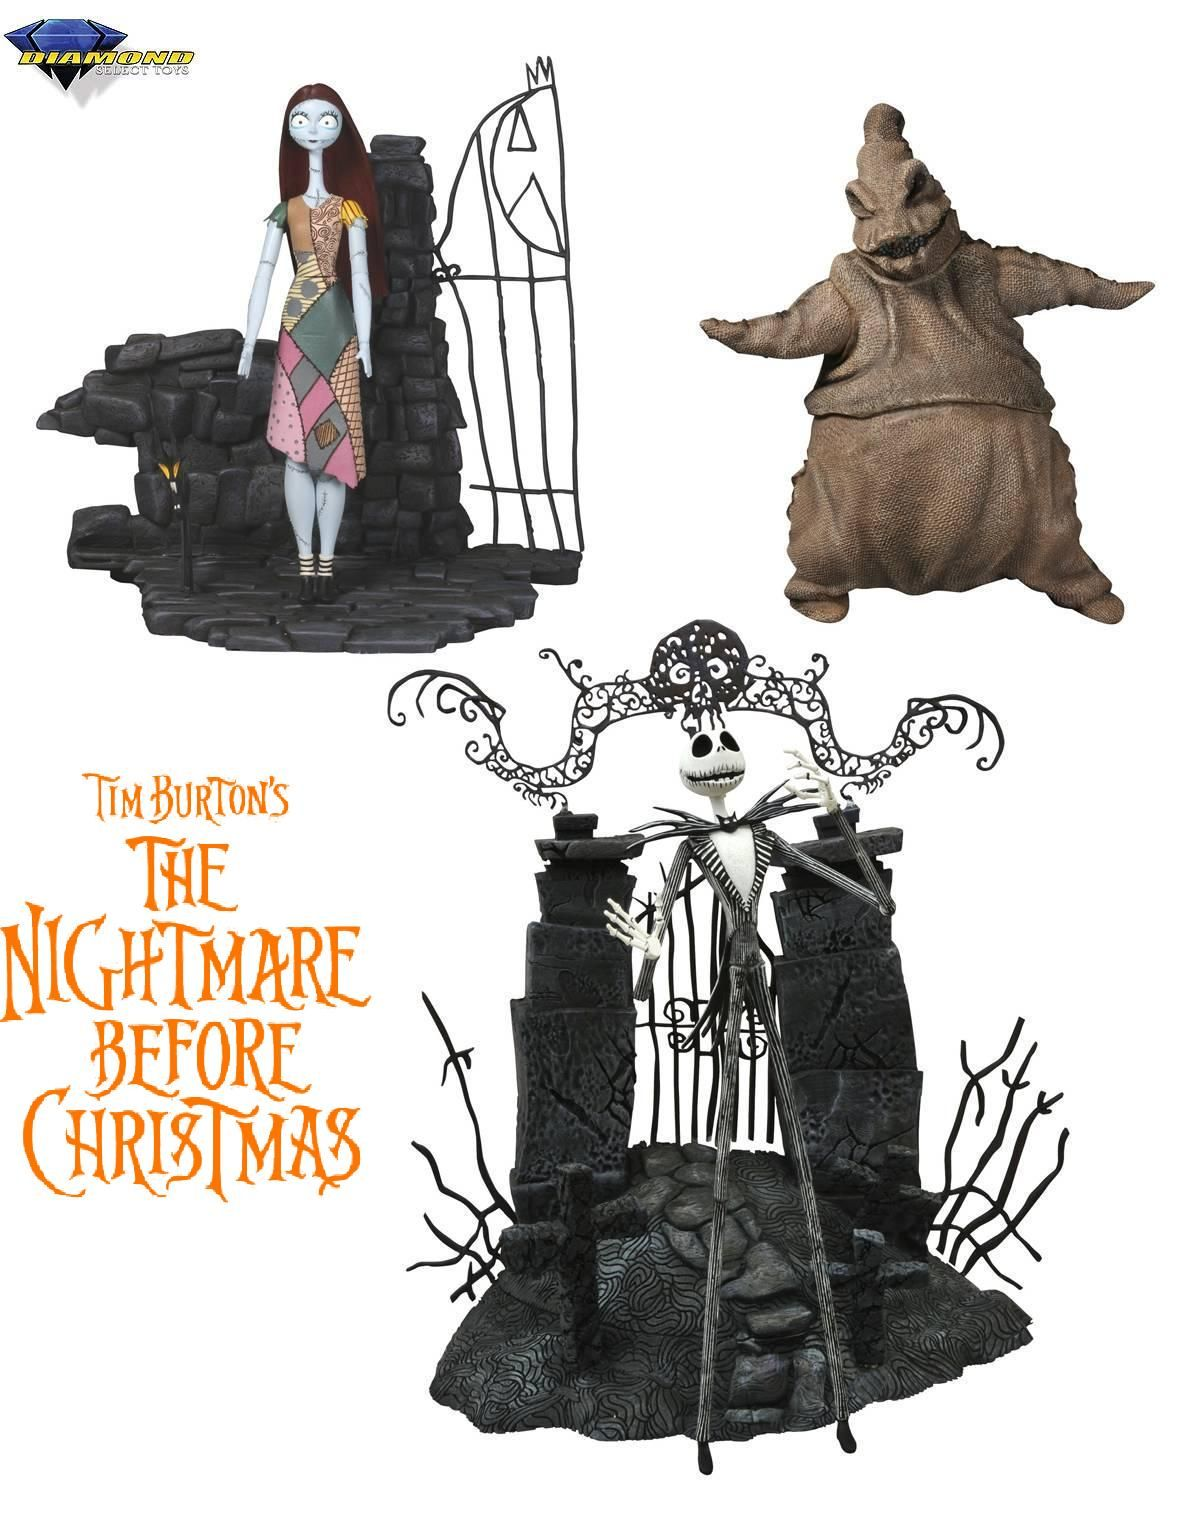 Diamond Select Toys The Nightmare Before Christmas Figure Set in ...